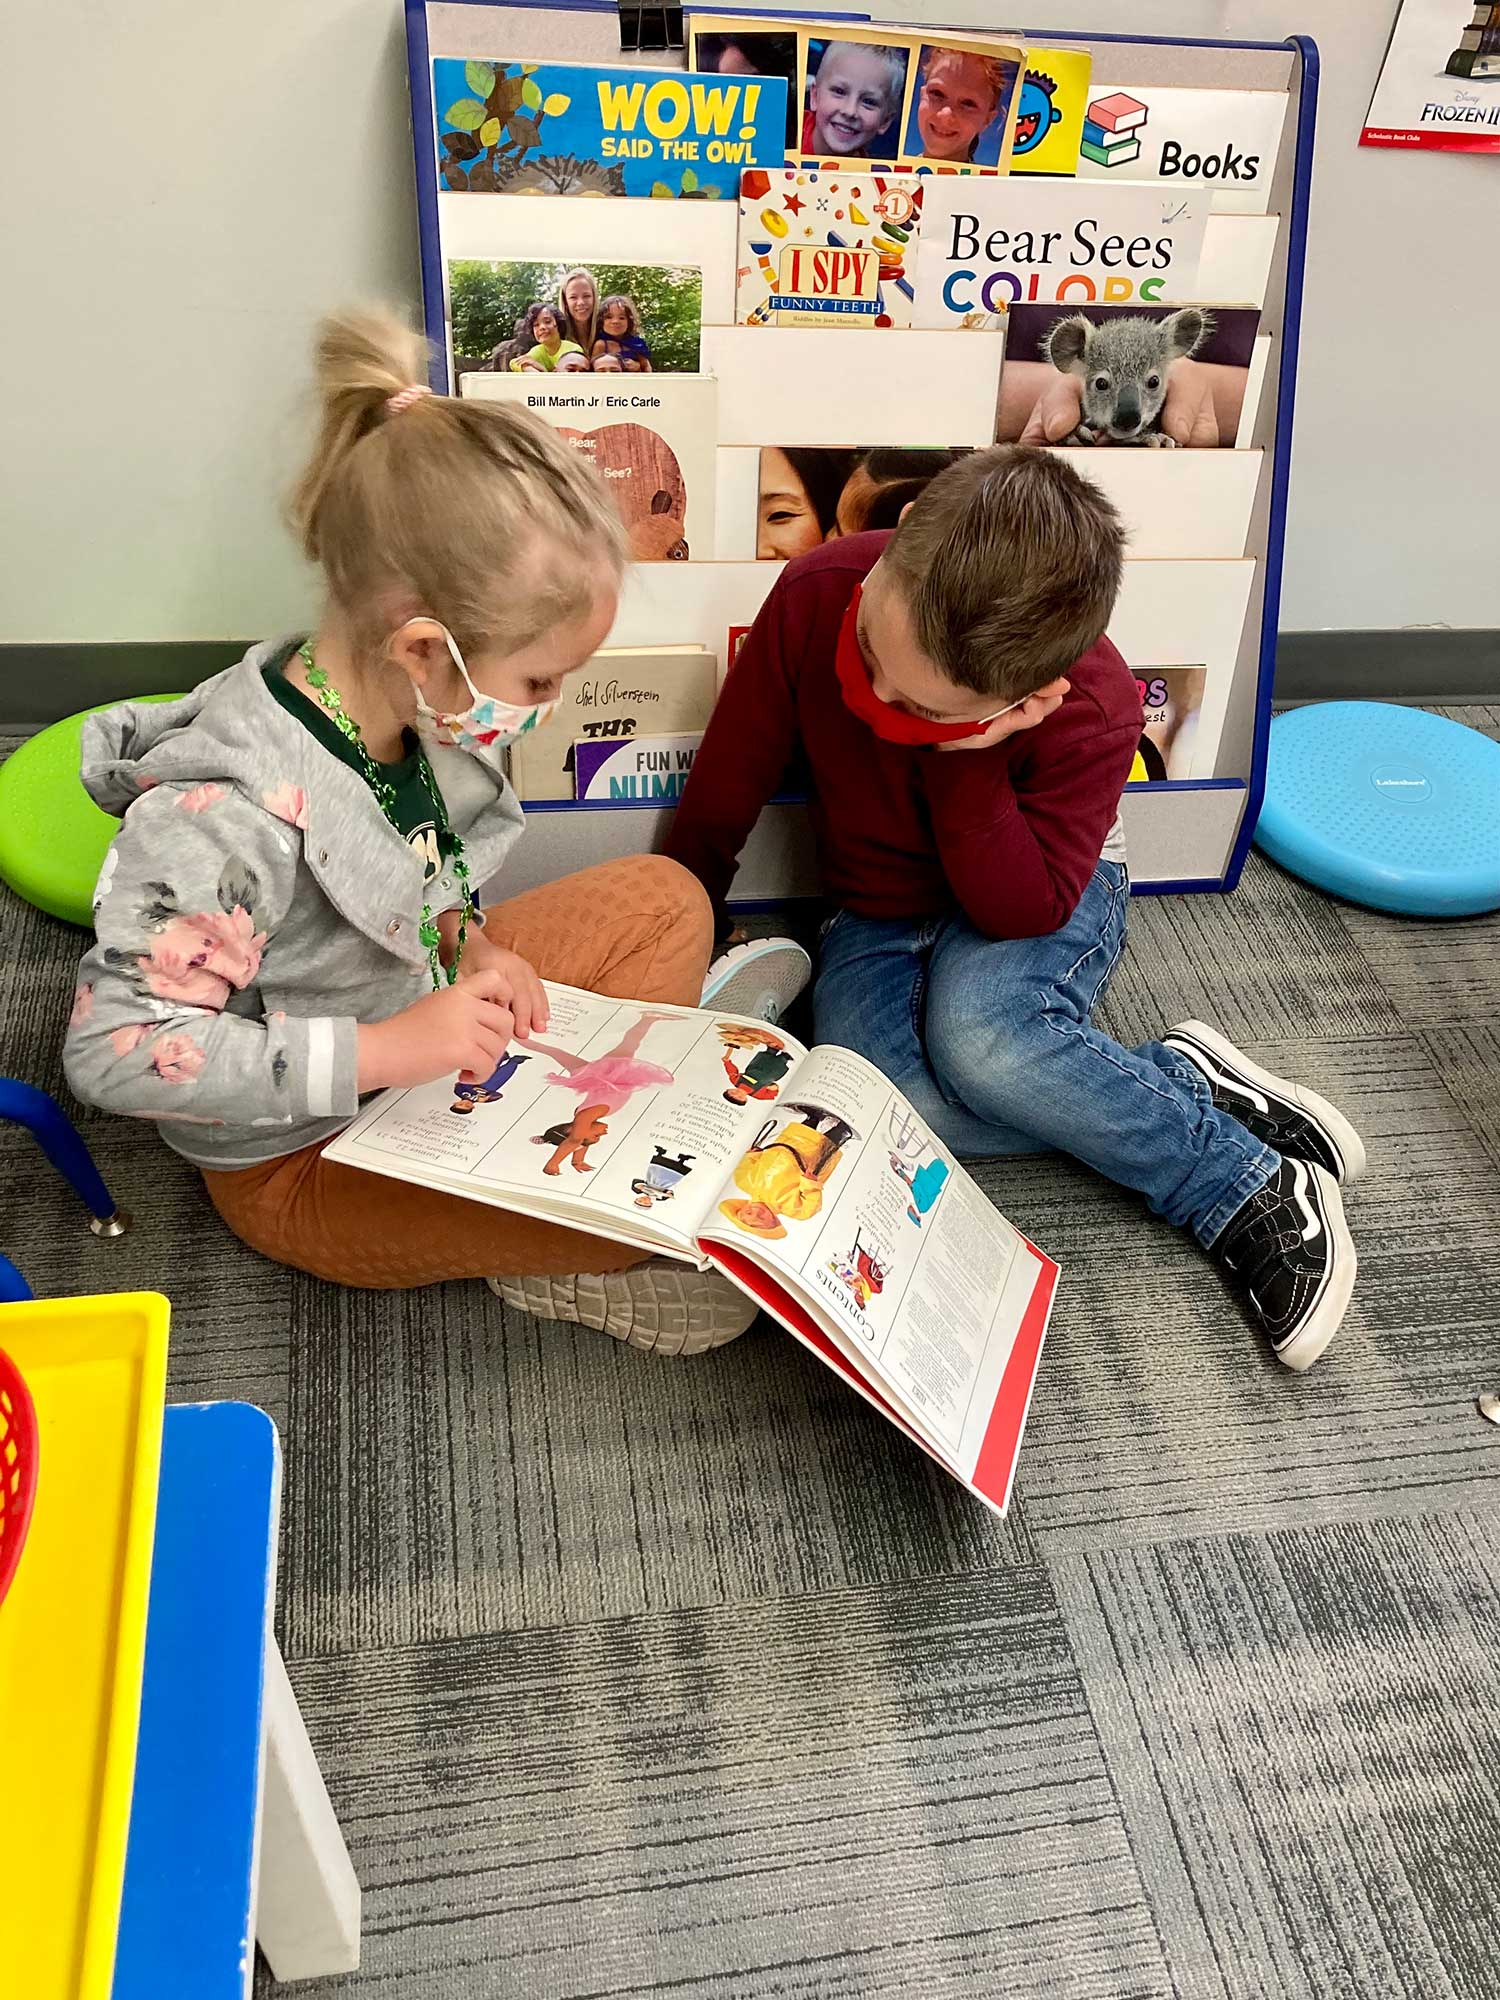 Boy and Girl Looking at a Book